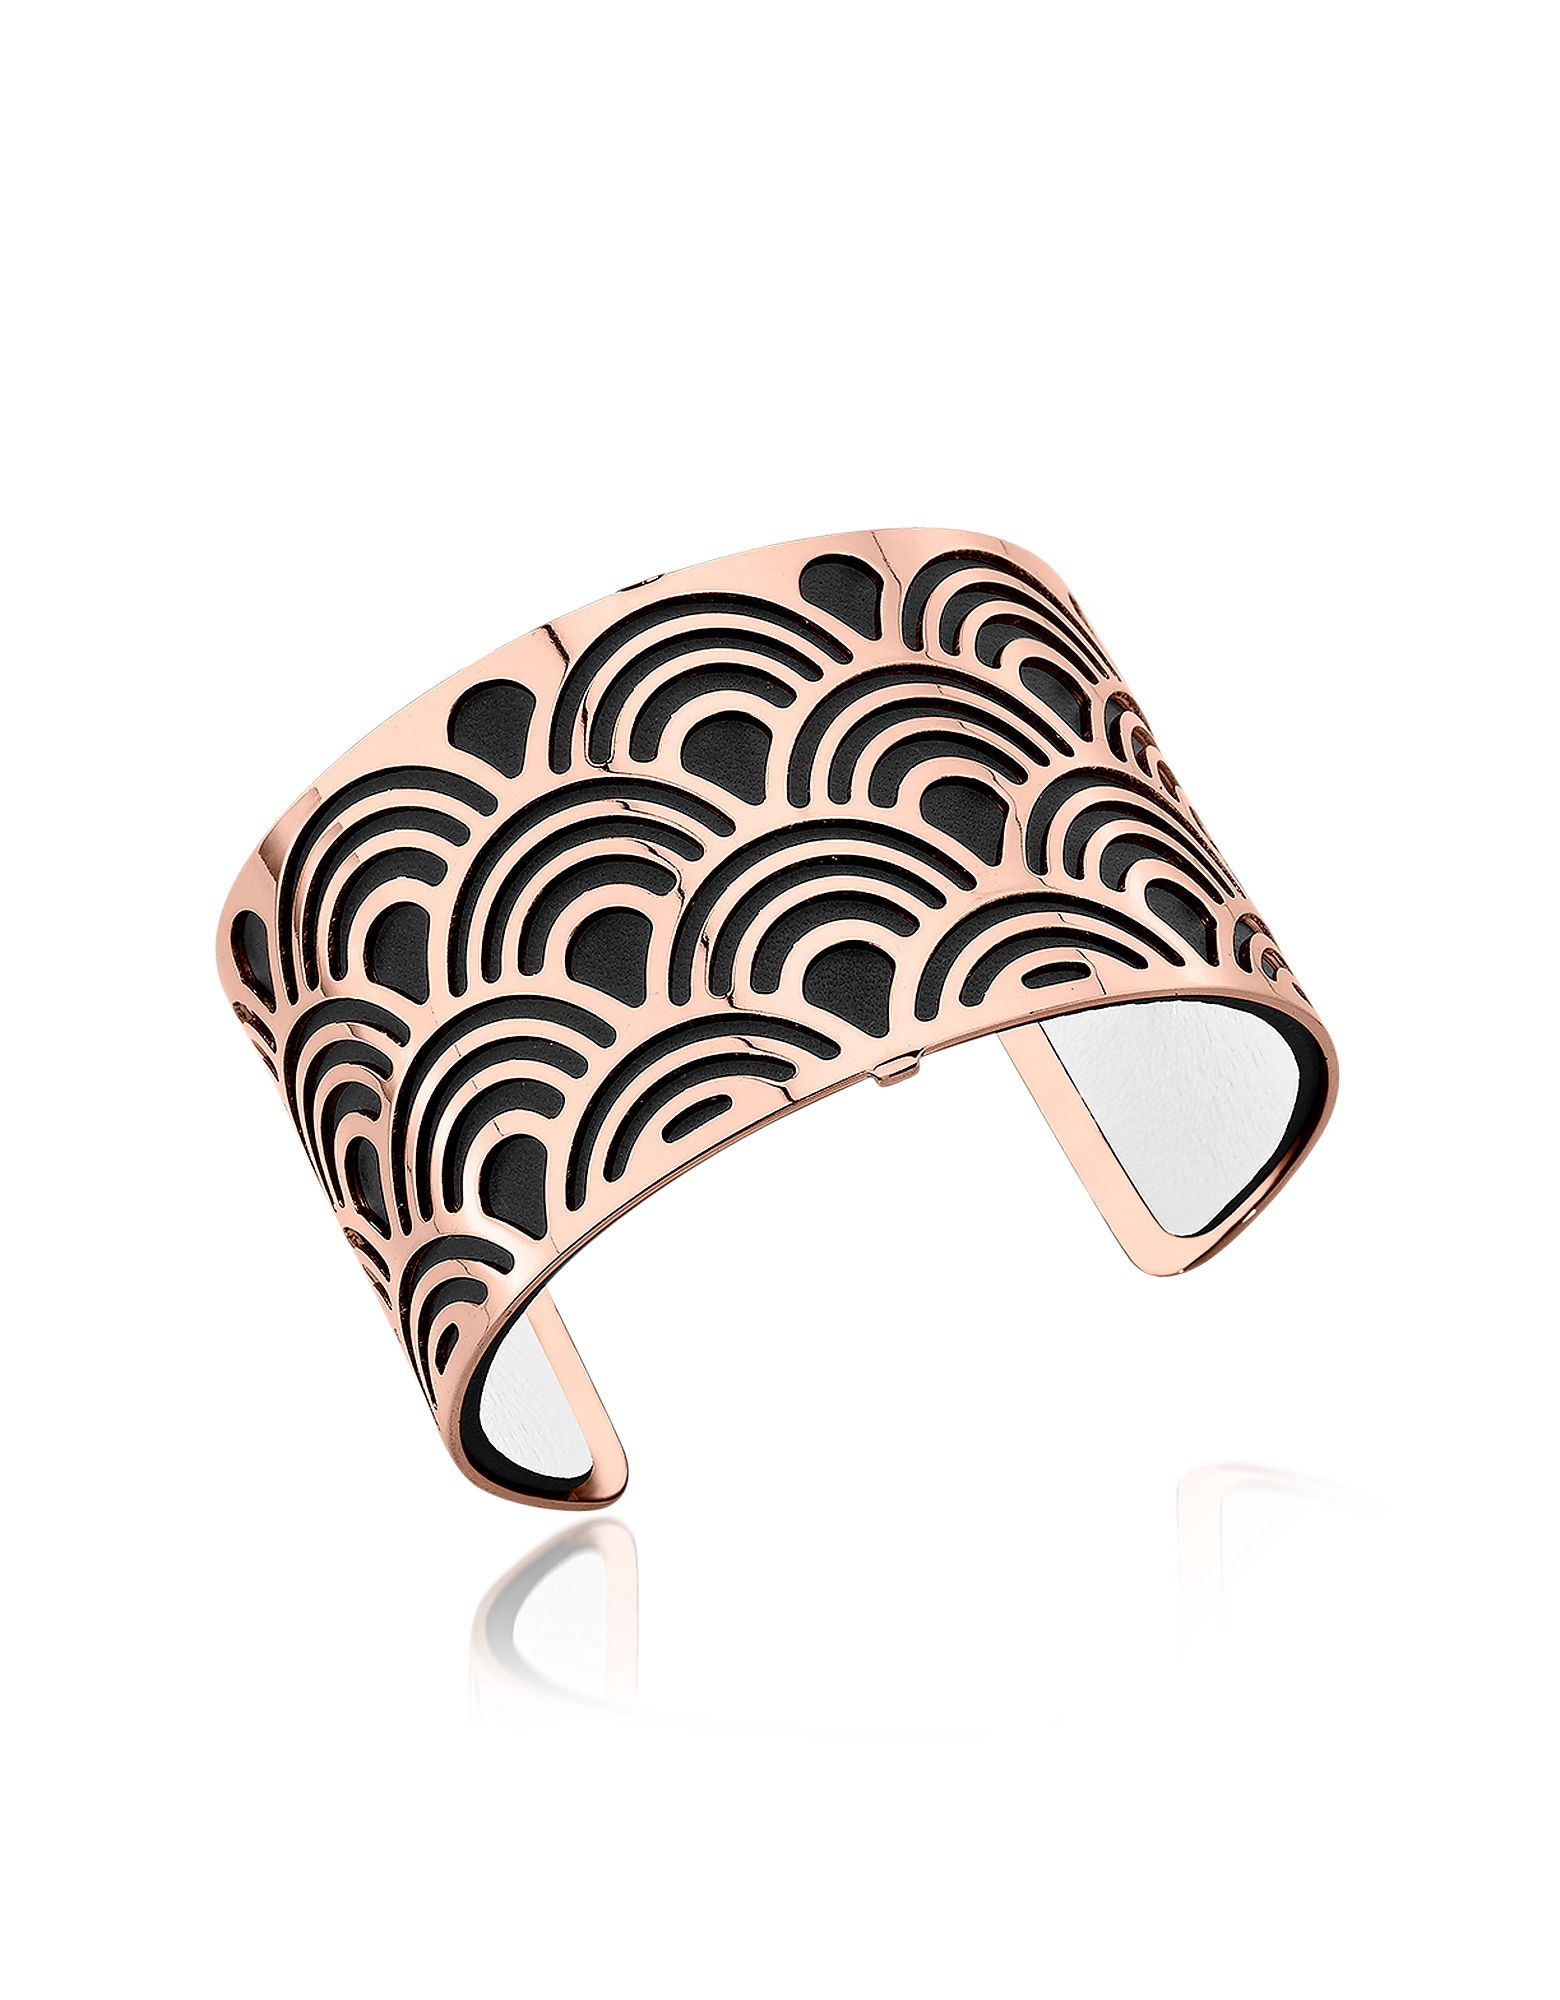 Les Georgettes Bracelets, Poisson Rose Gold Plated Bracelet w/Black and White Reversible Leather Str